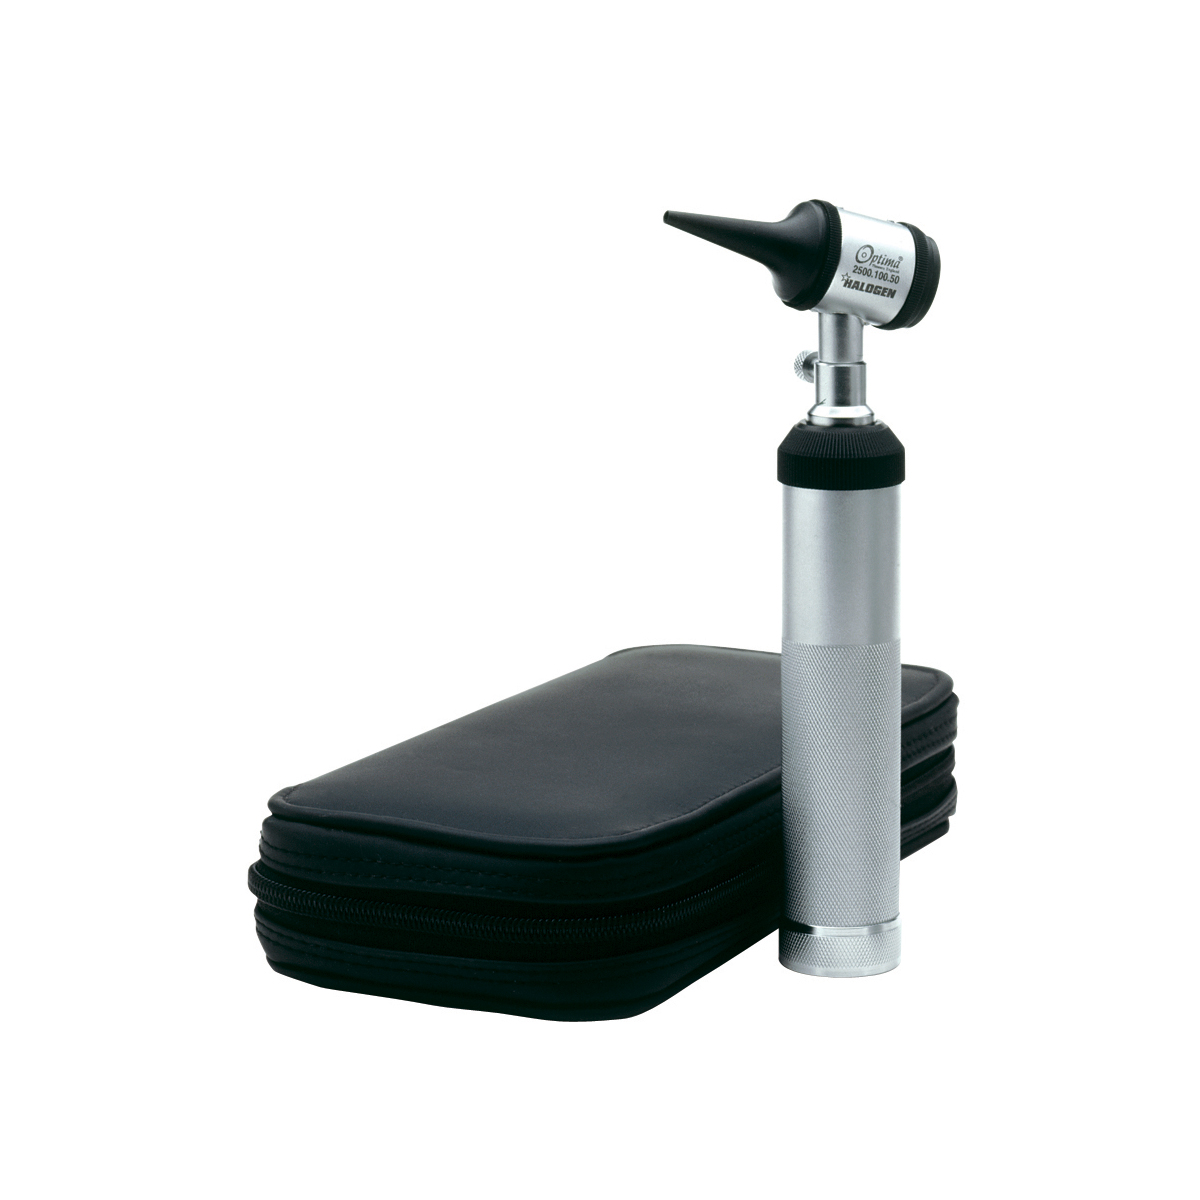 Orion 8 Otoscope